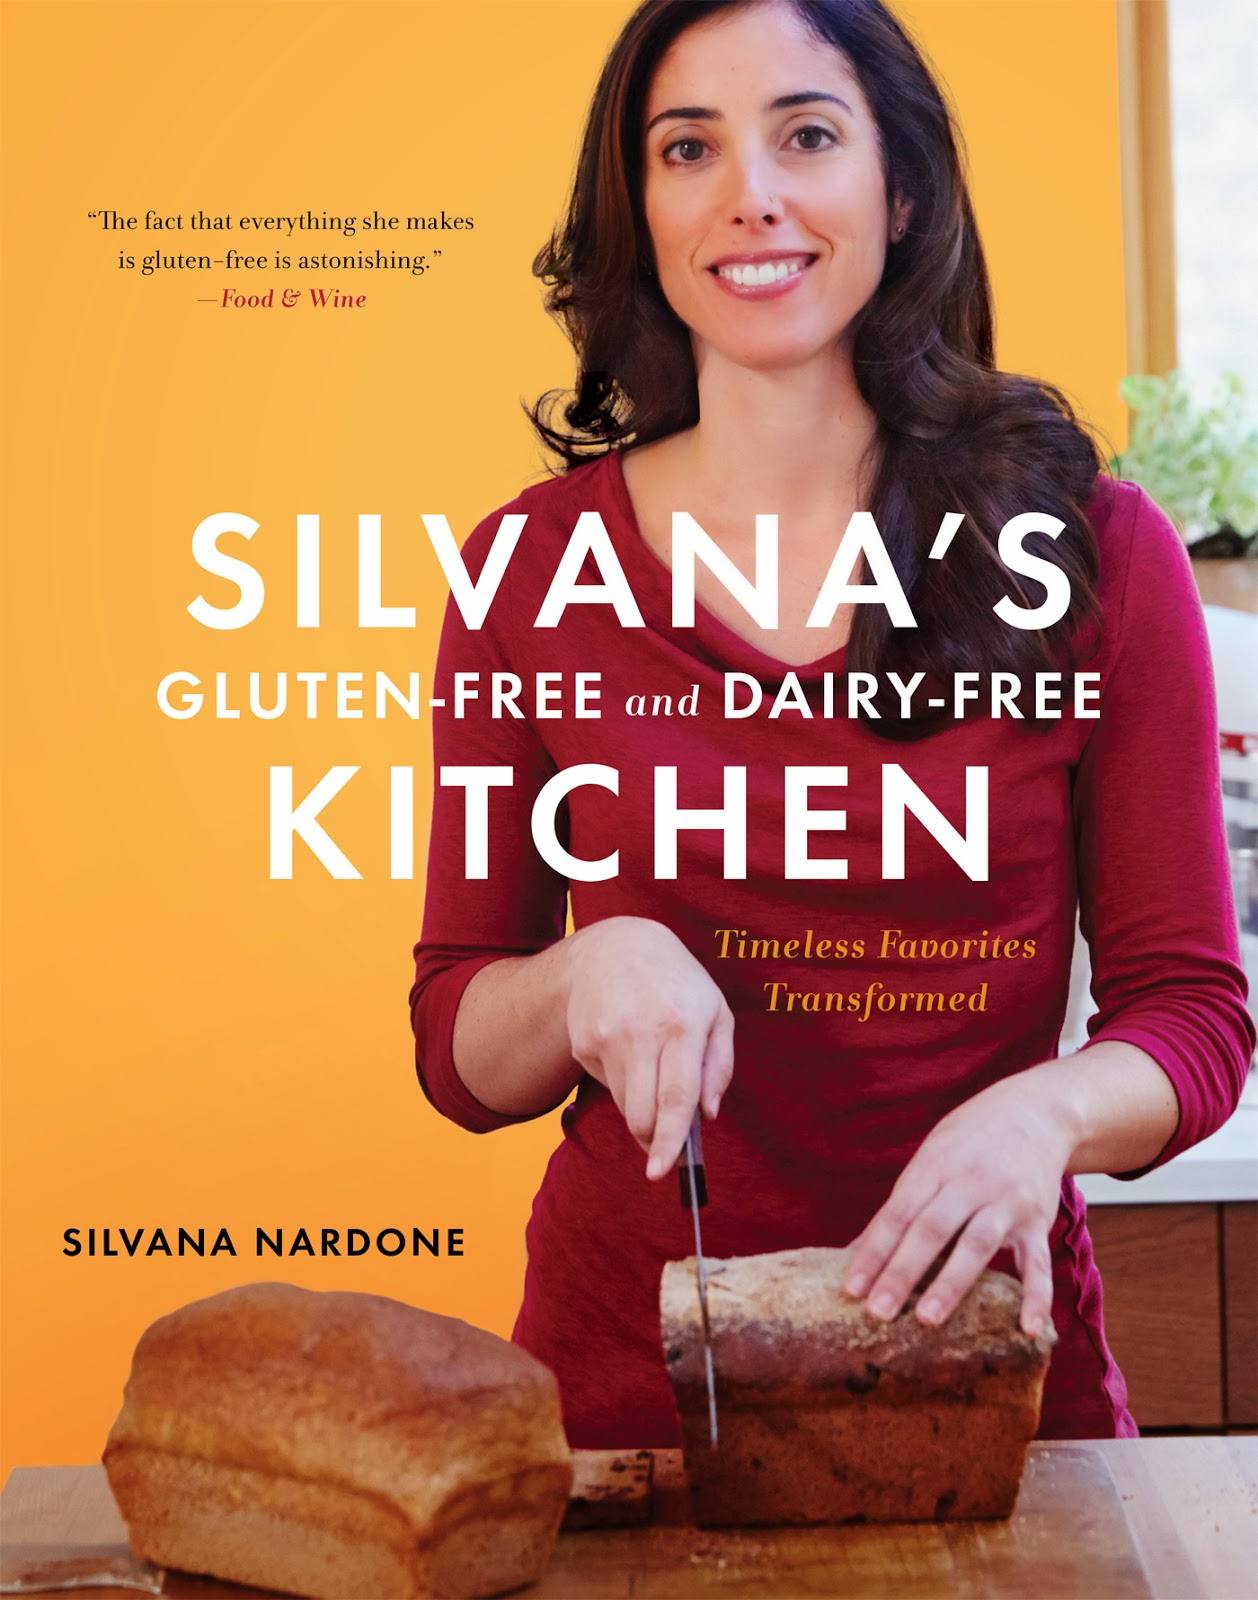 Silvana's Dairy-Free and Gluten-Free Kitchen on Kim's Welcoming Kitchen